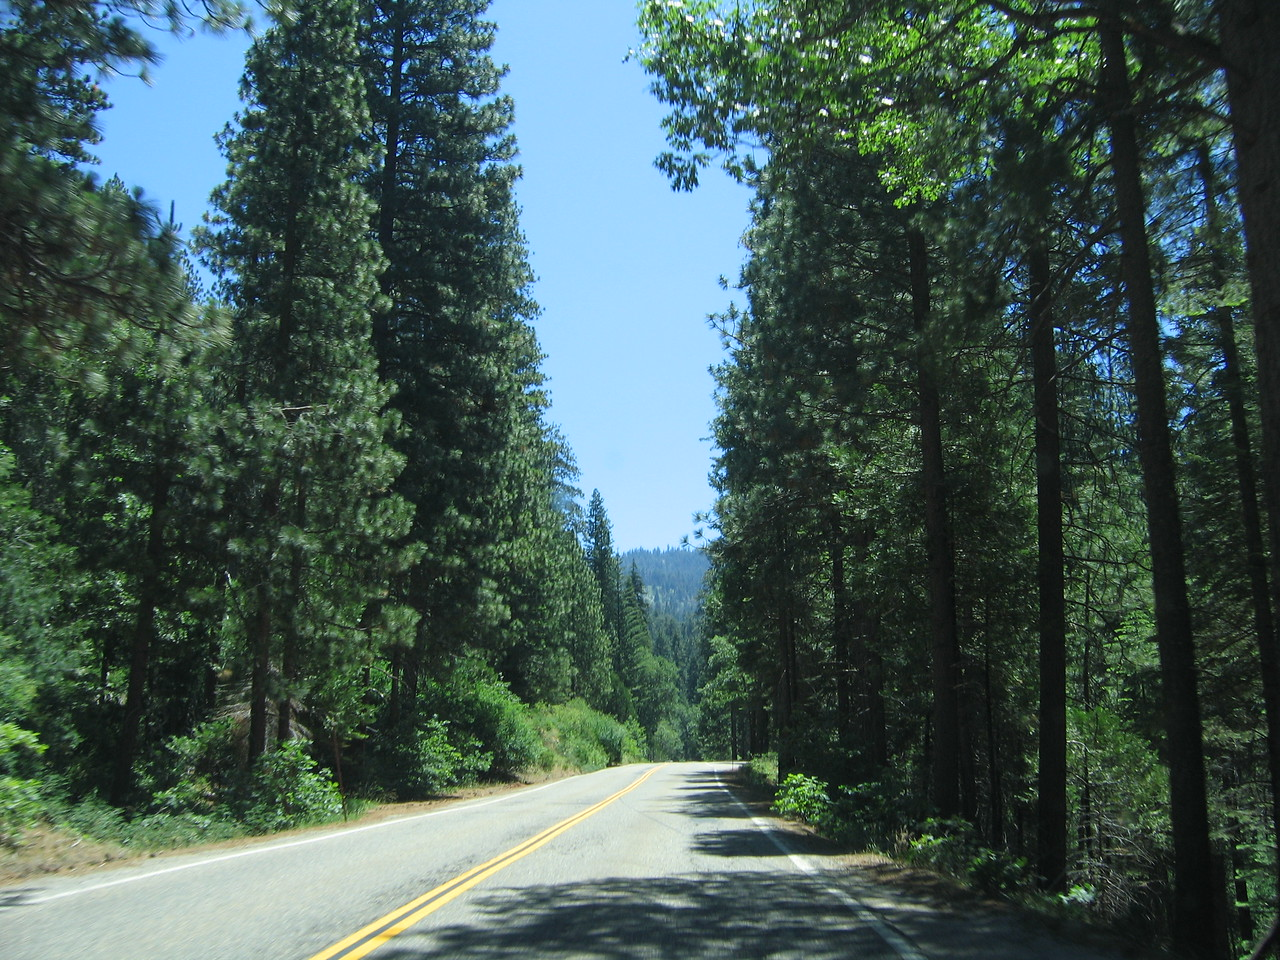 Driving through Yosemite.